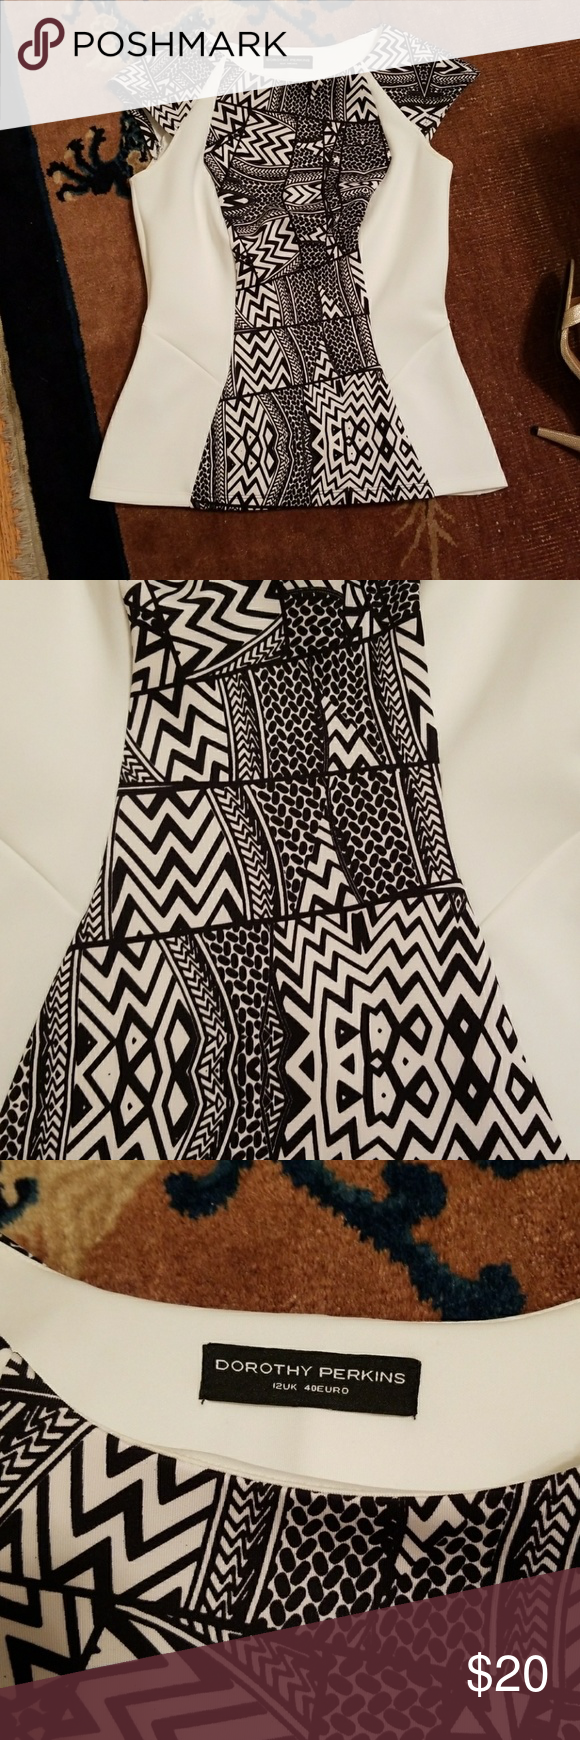 Dorothy Perkins Black and White flared top Gorgeous cap sleeve black and white printed top. Not quite a peplum, but is fitted through bodice and has slight flare toward bottom. It's a European size 12, but it for me perfectly when I was a size 6/8 US. Fabric is soft and stretchy. Hits around top of hip. Worn once. Like New condition. Dorothy Perkins Tops